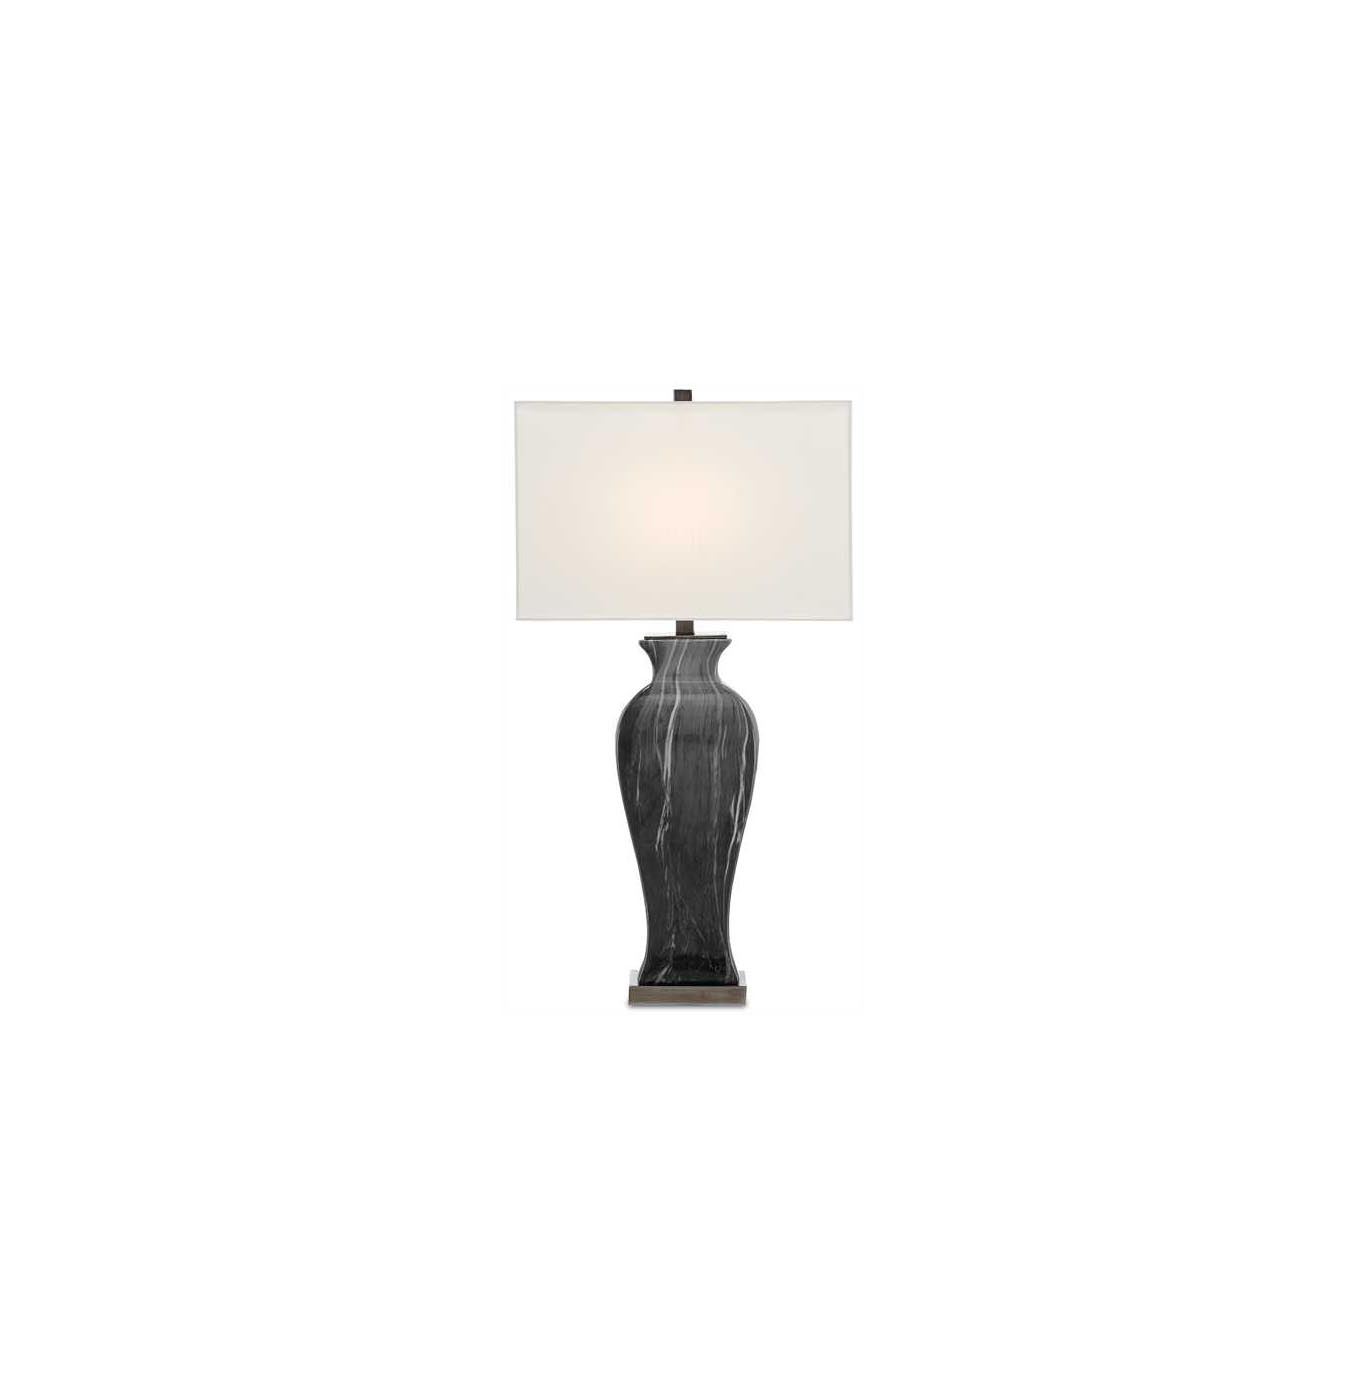 Accent table lamps island city traders add to wishlist loading mozeypictures Choice Image